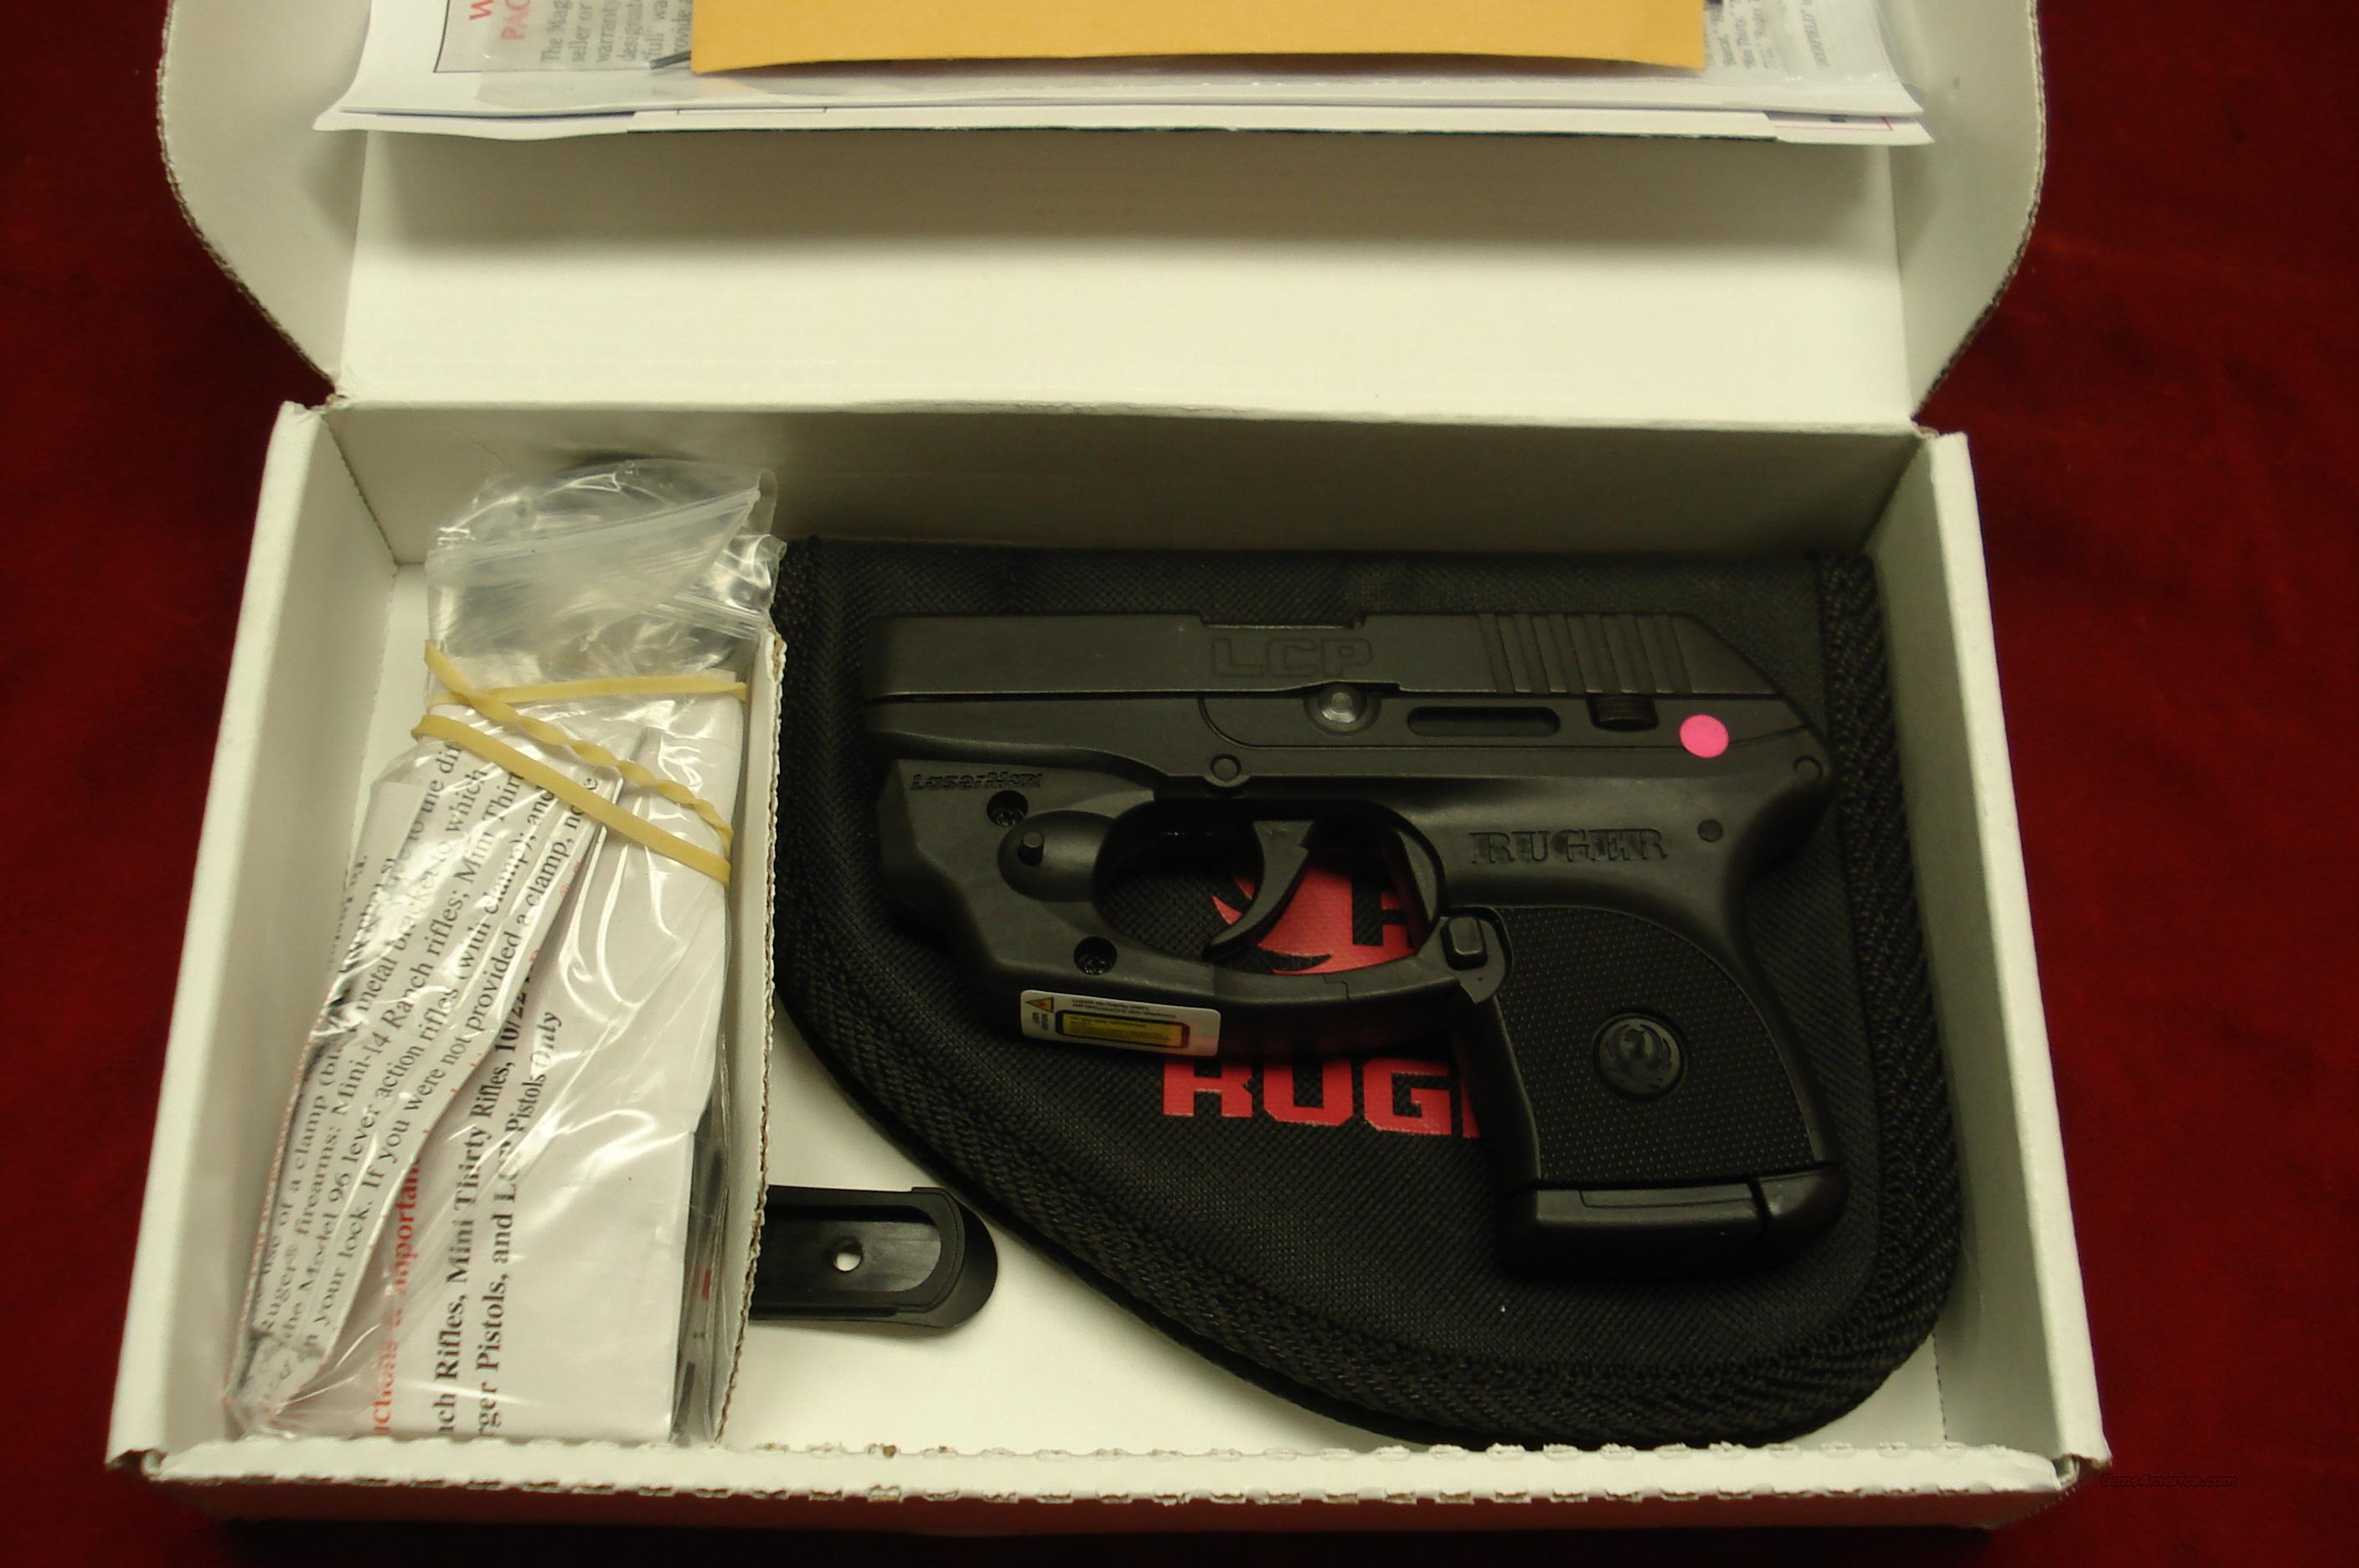 RUGER LCP (Lightweight Compact Pistol) 380CAL. WITH FACTORY INSTALLED LASER NEW  Guns > Pistols > Ruger Semi-Auto Pistols > LCP